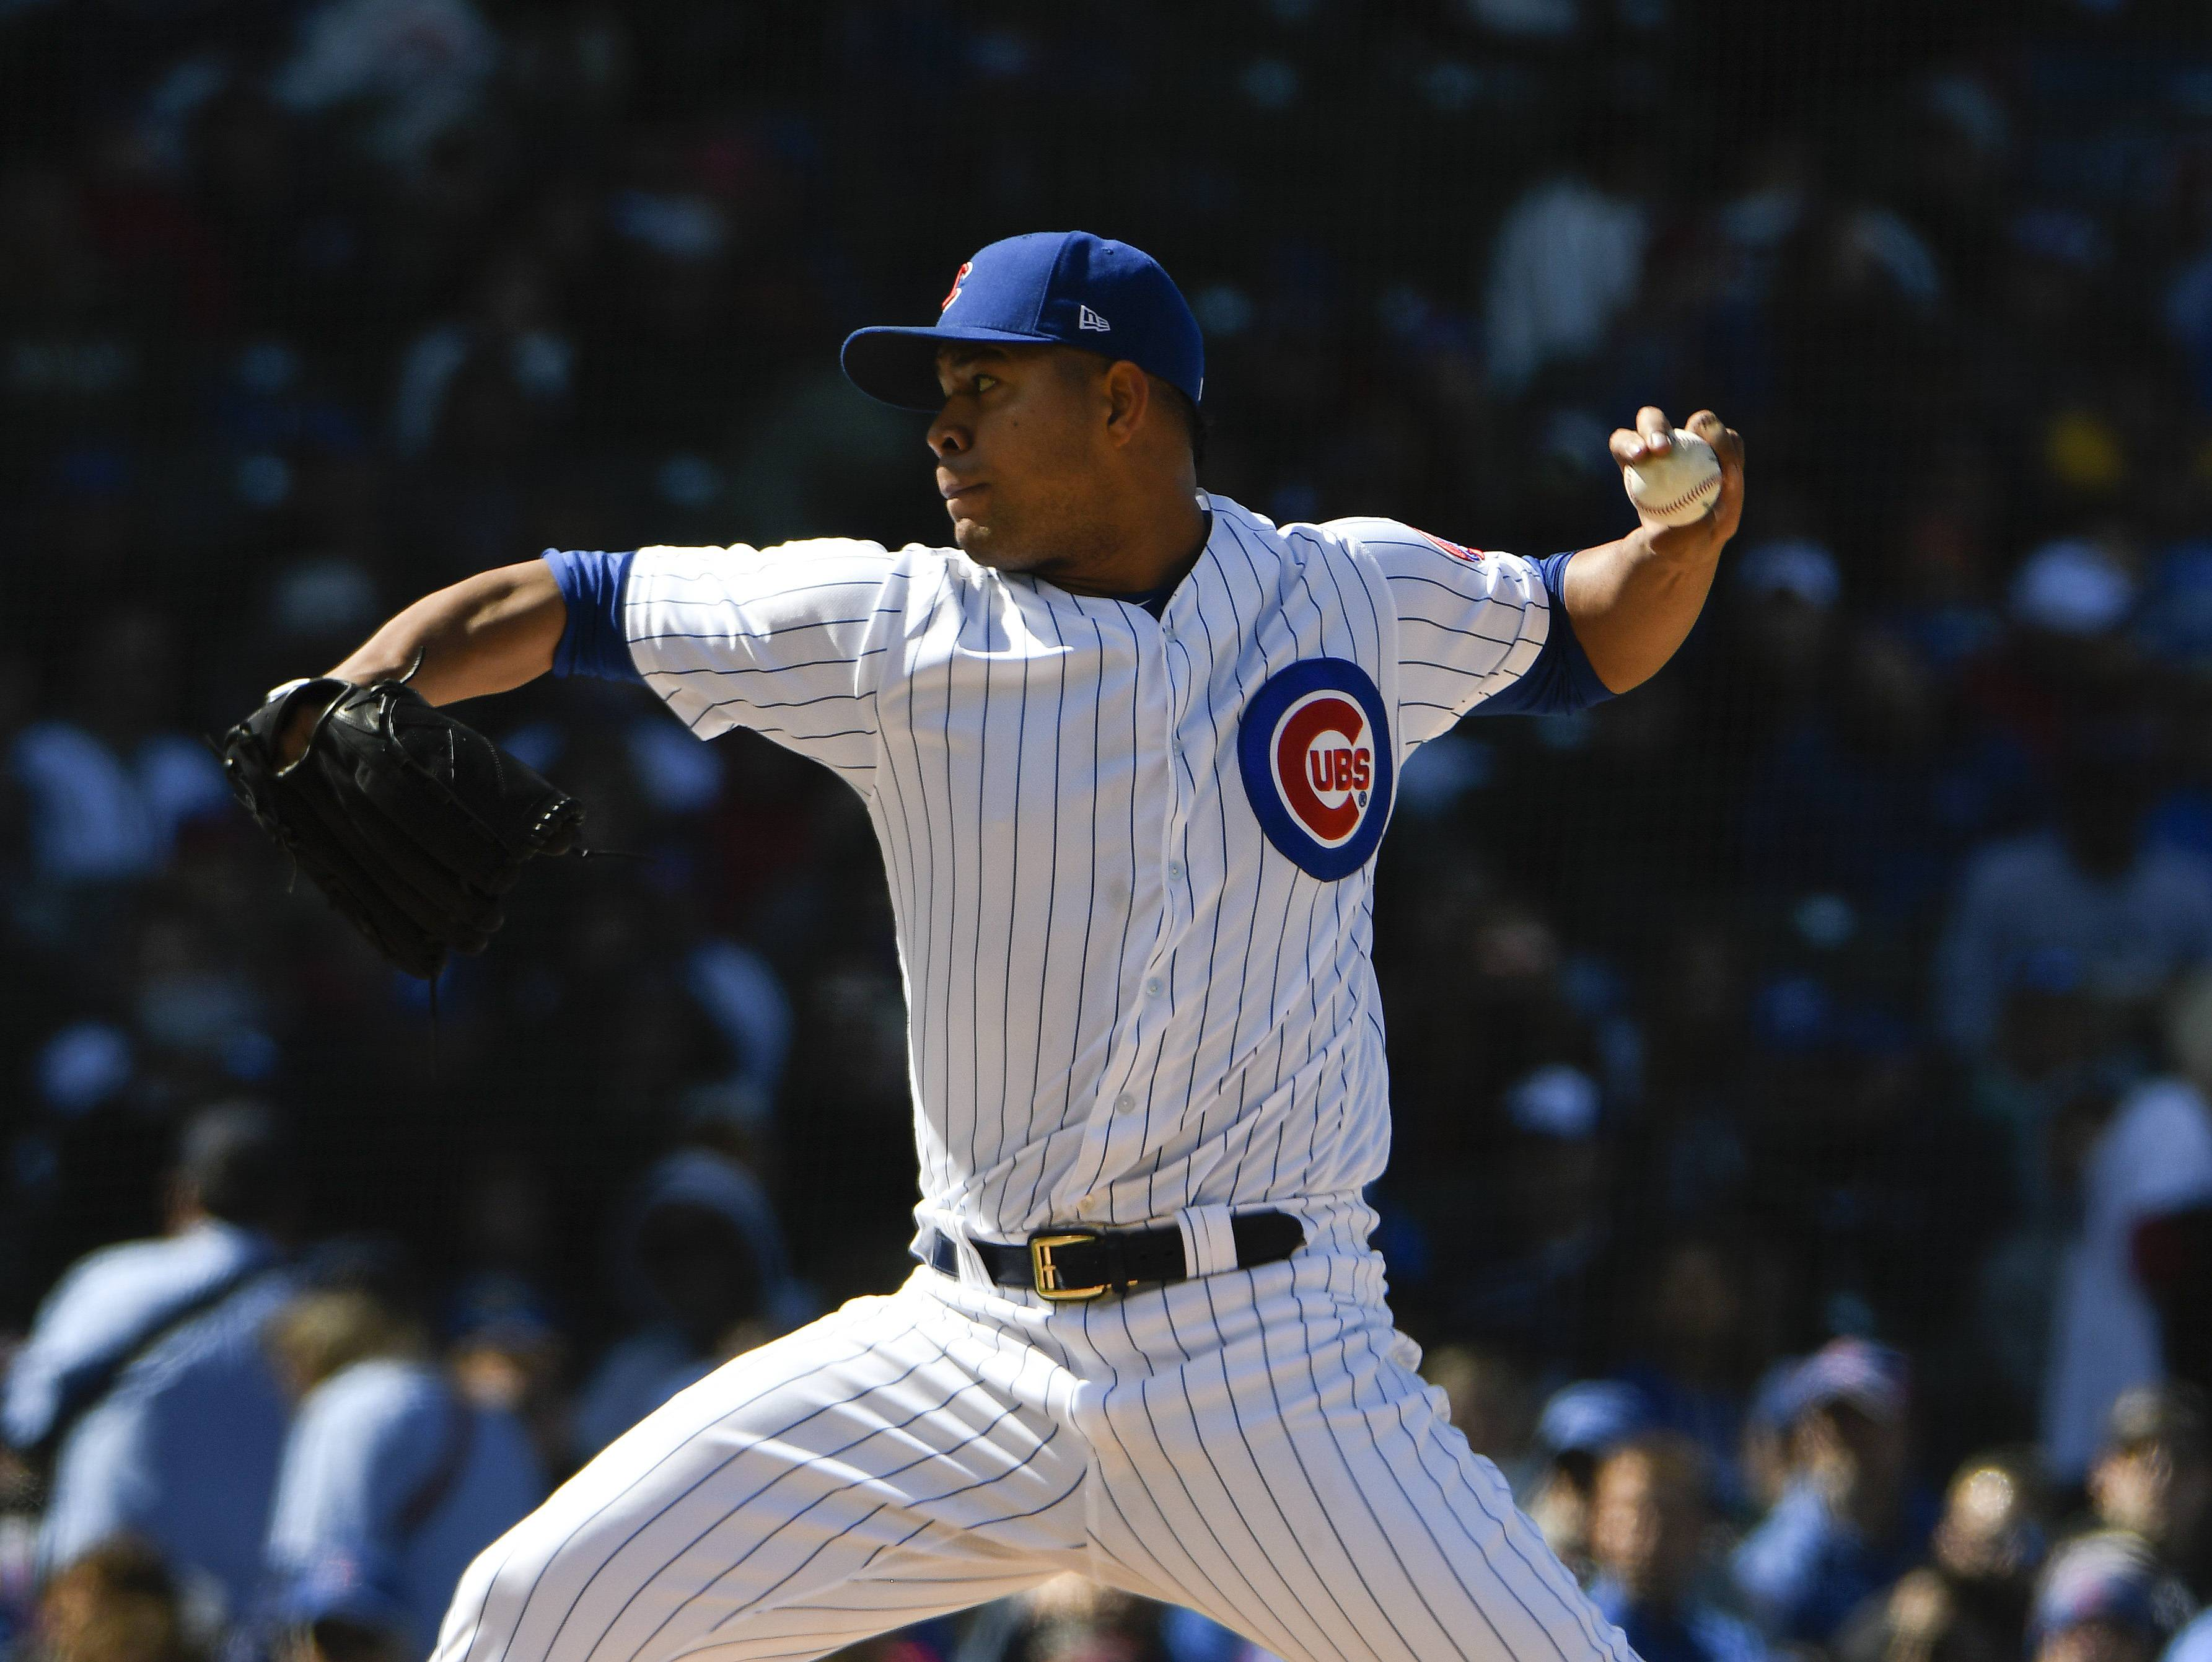 Cubs' Quintana dominant in win over Brewers